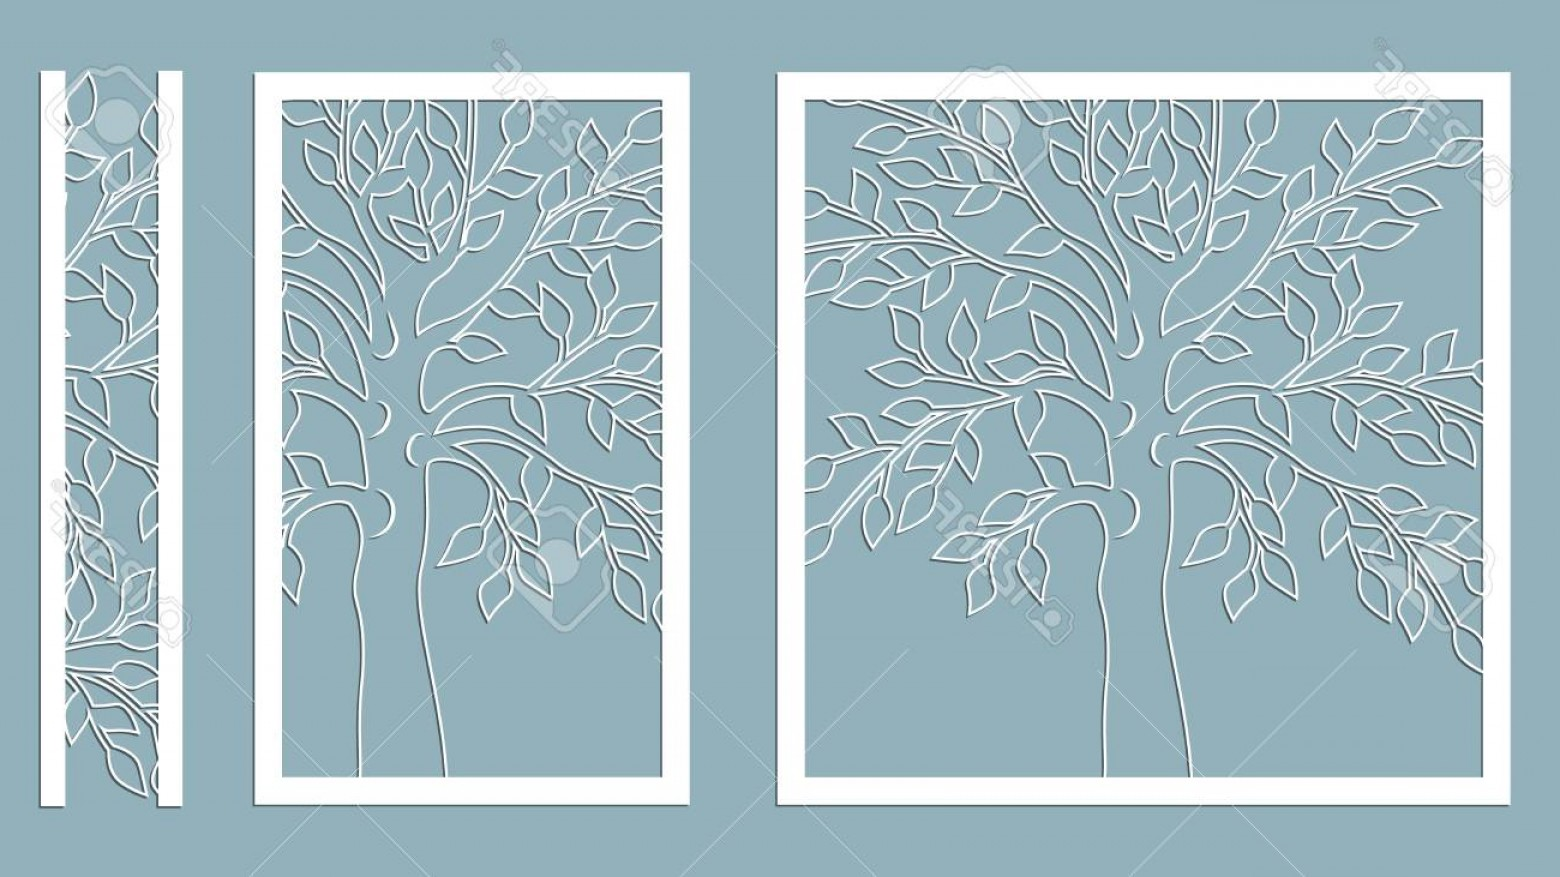 Champagne Vinyl Plotter Vector Art: Photostock Vector Laser Cut Vector Design Laser Cutting Template Tree Paper Cutting Plotter And Screen Printing Serigr